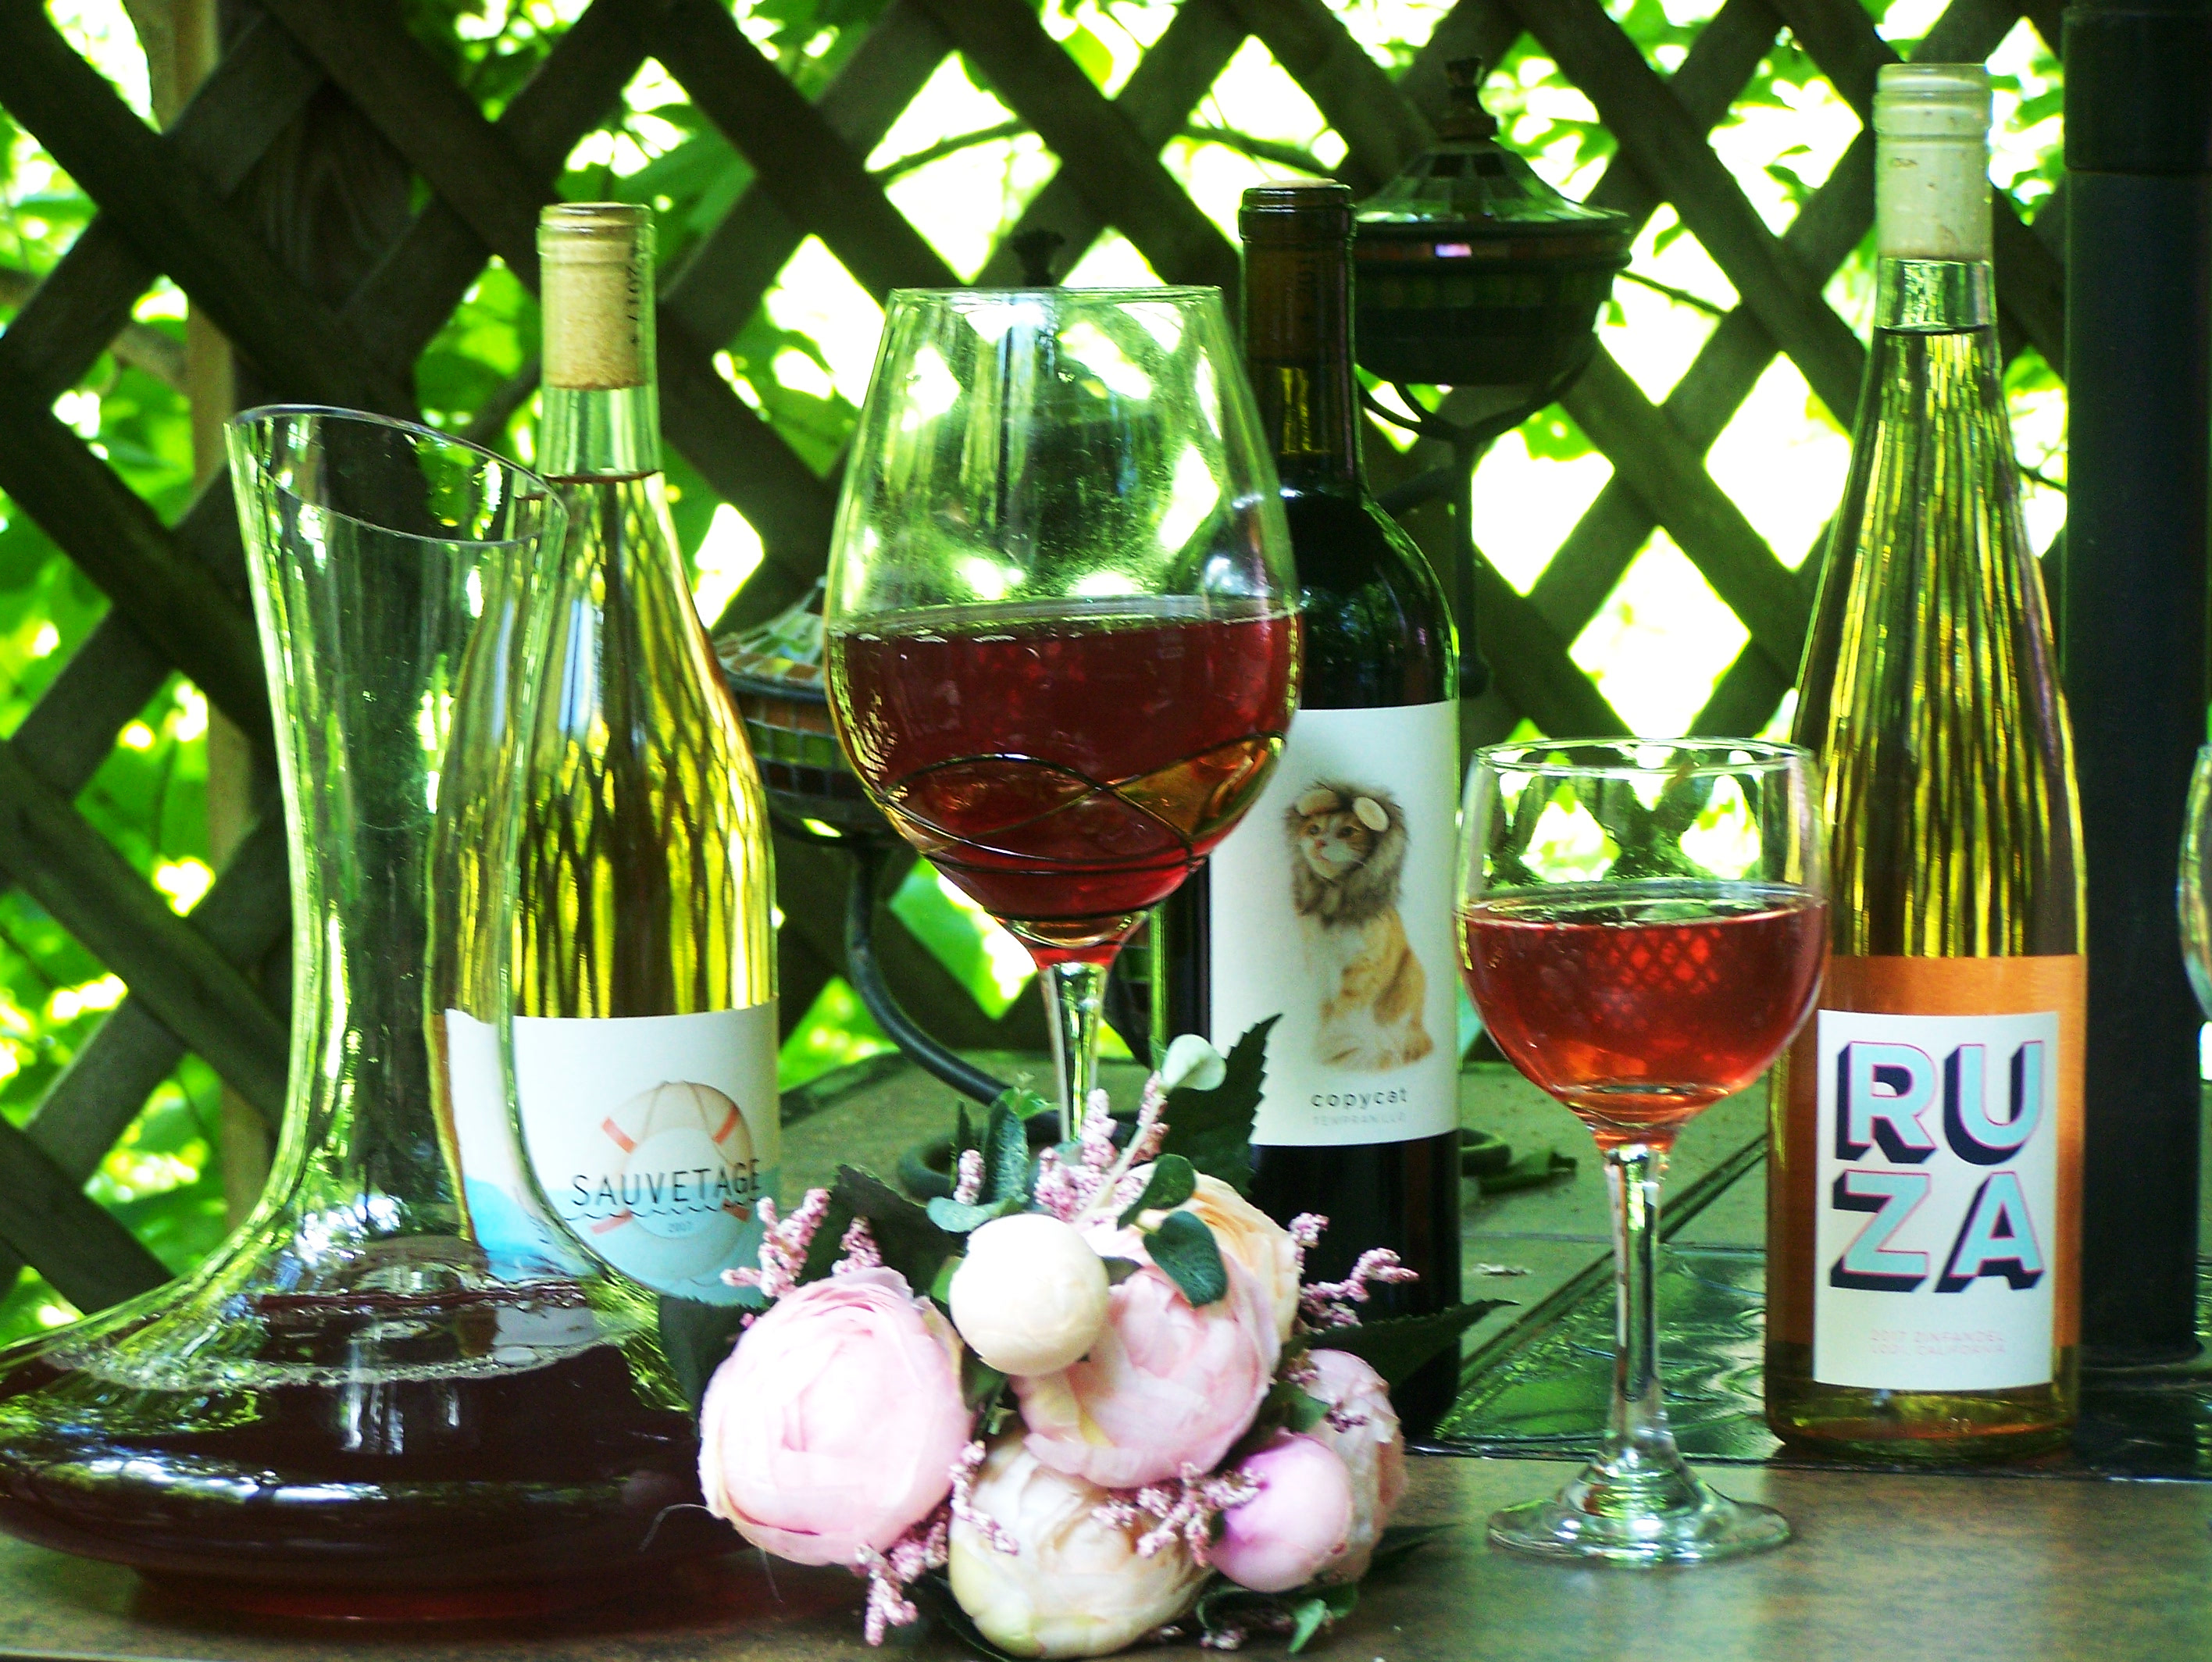 WINC wines exploring wines wine service box subscription unboxing food foodie drink drinks alcohol french california unusual white red rose copycat ruza sauvetageville base rosa obscura pr friendly food and wine blog blogger brand ambassador glasses table setting flowers glass decanter